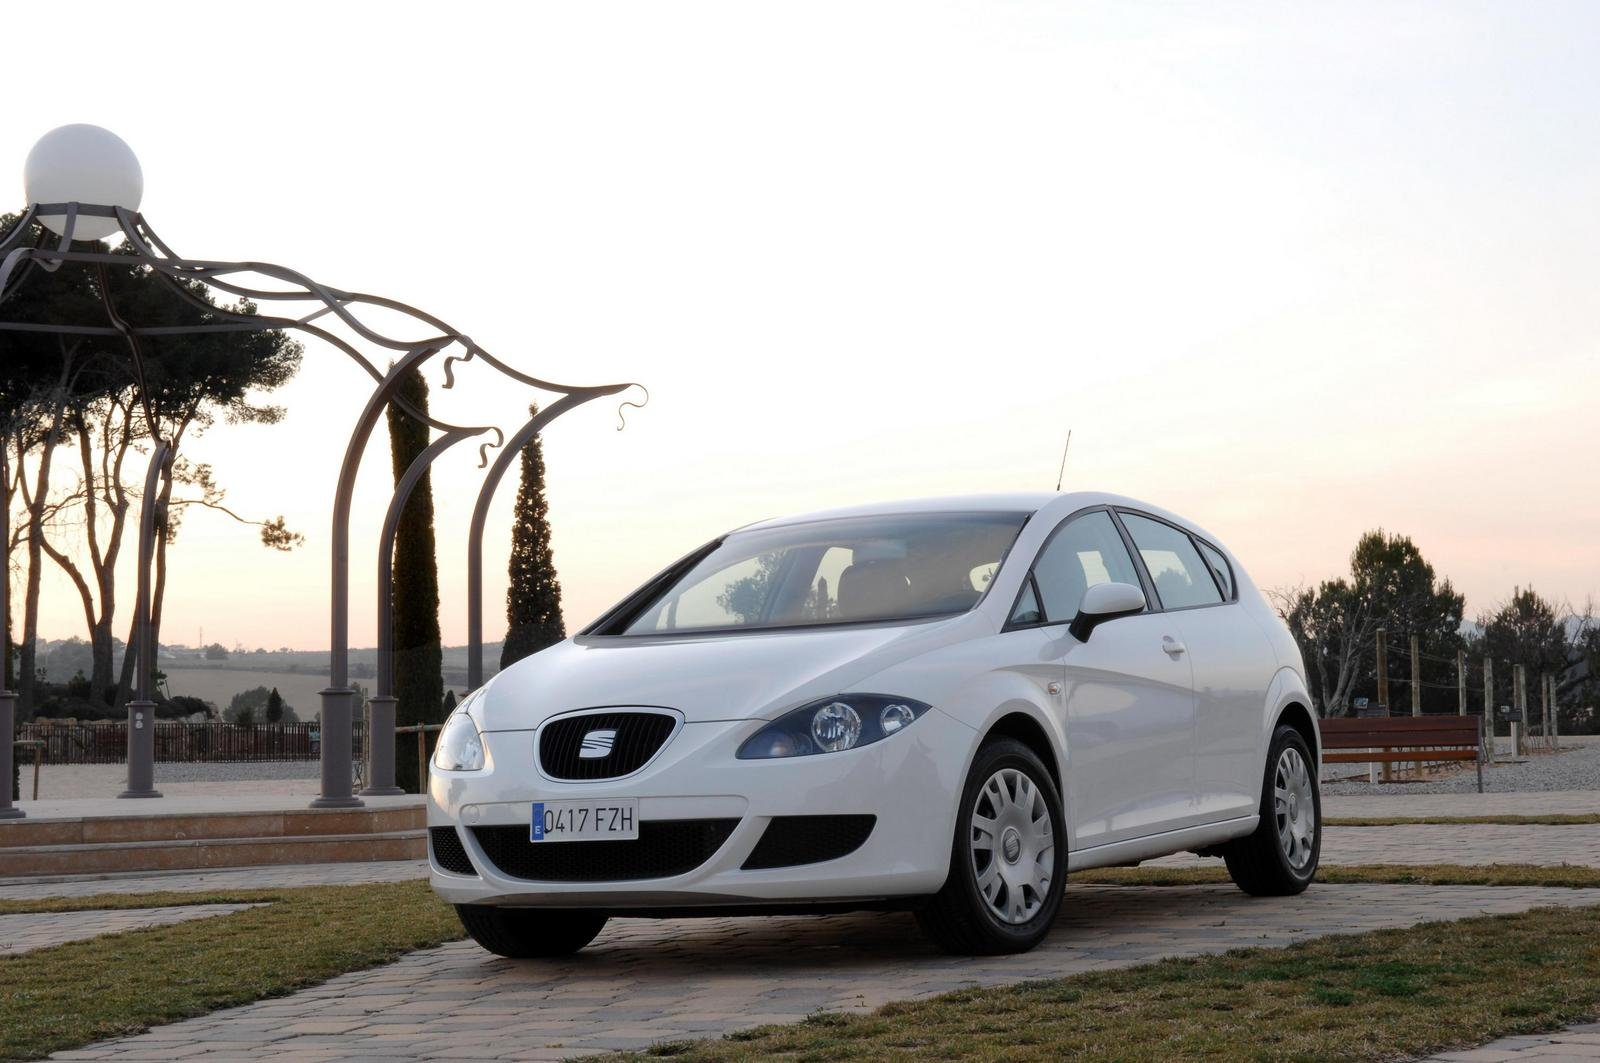 2008 seat leon ecomotive picture 228860 car review top speed. Black Bedroom Furniture Sets. Home Design Ideas